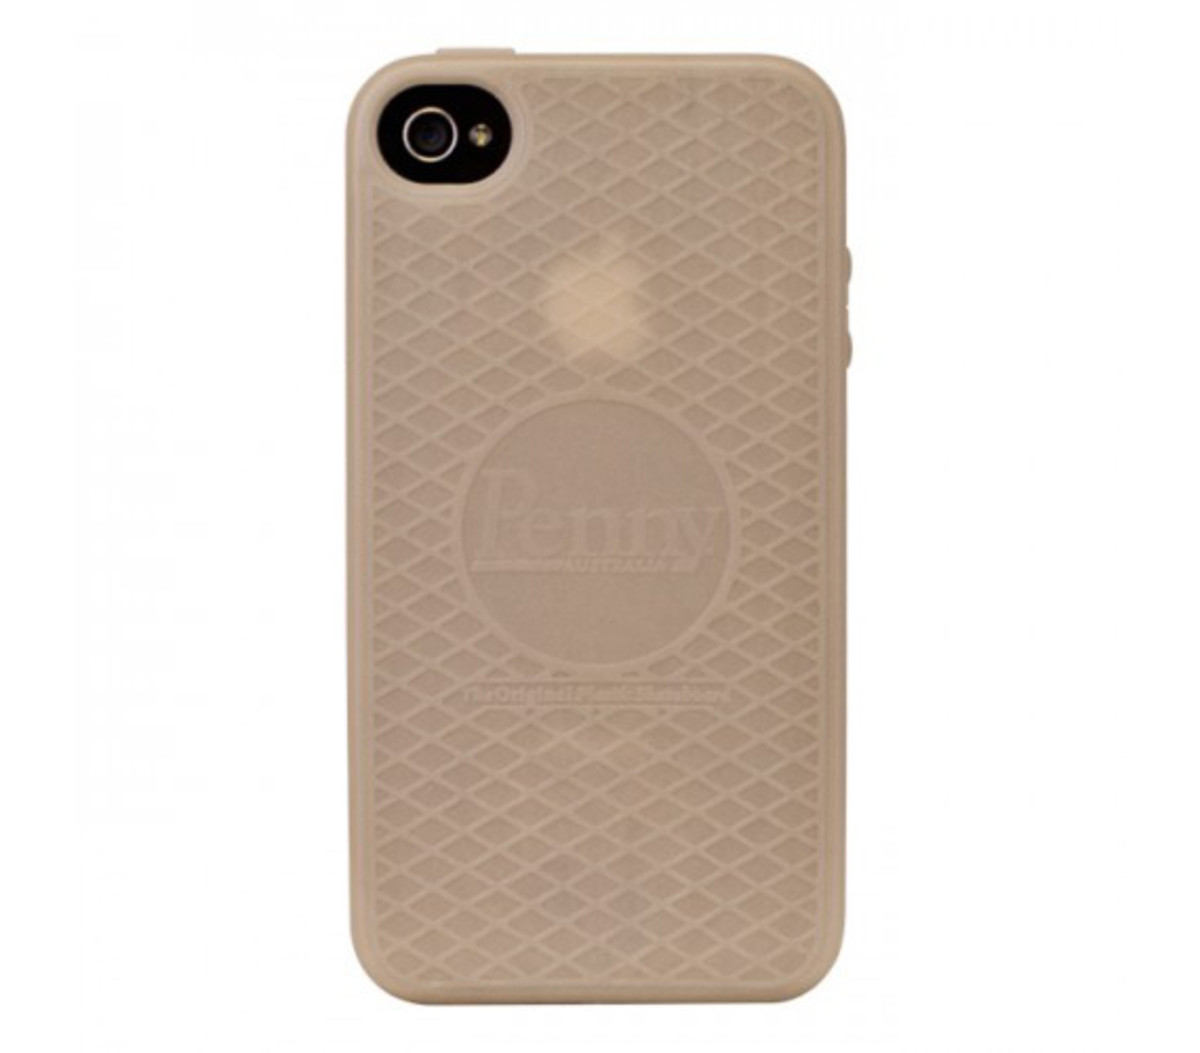 penny-skateboards-iphone-cover-10